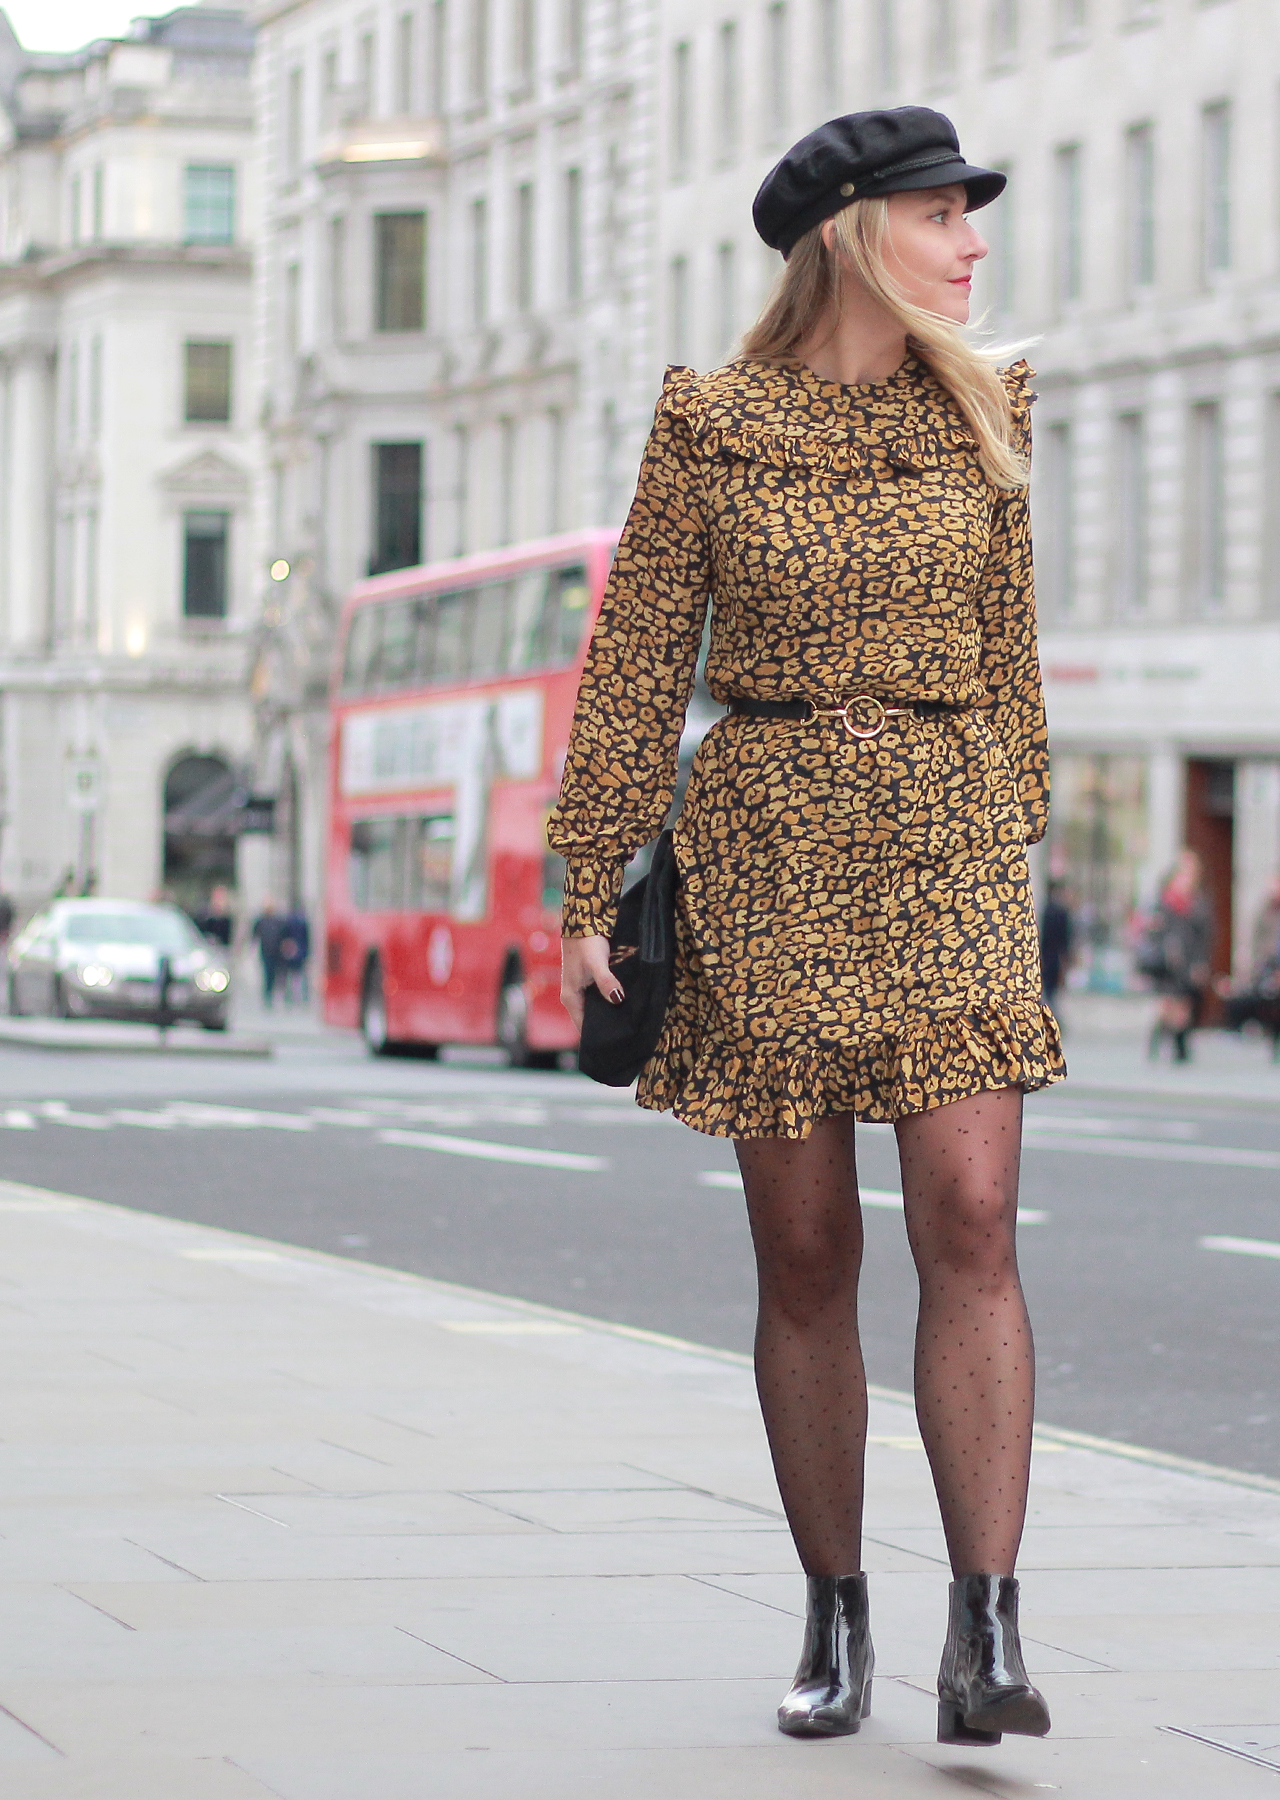 The Steele Maiden: London Night Out Style - Leopard Ruffle Dress, Fisherman's Cap and Patent Booties